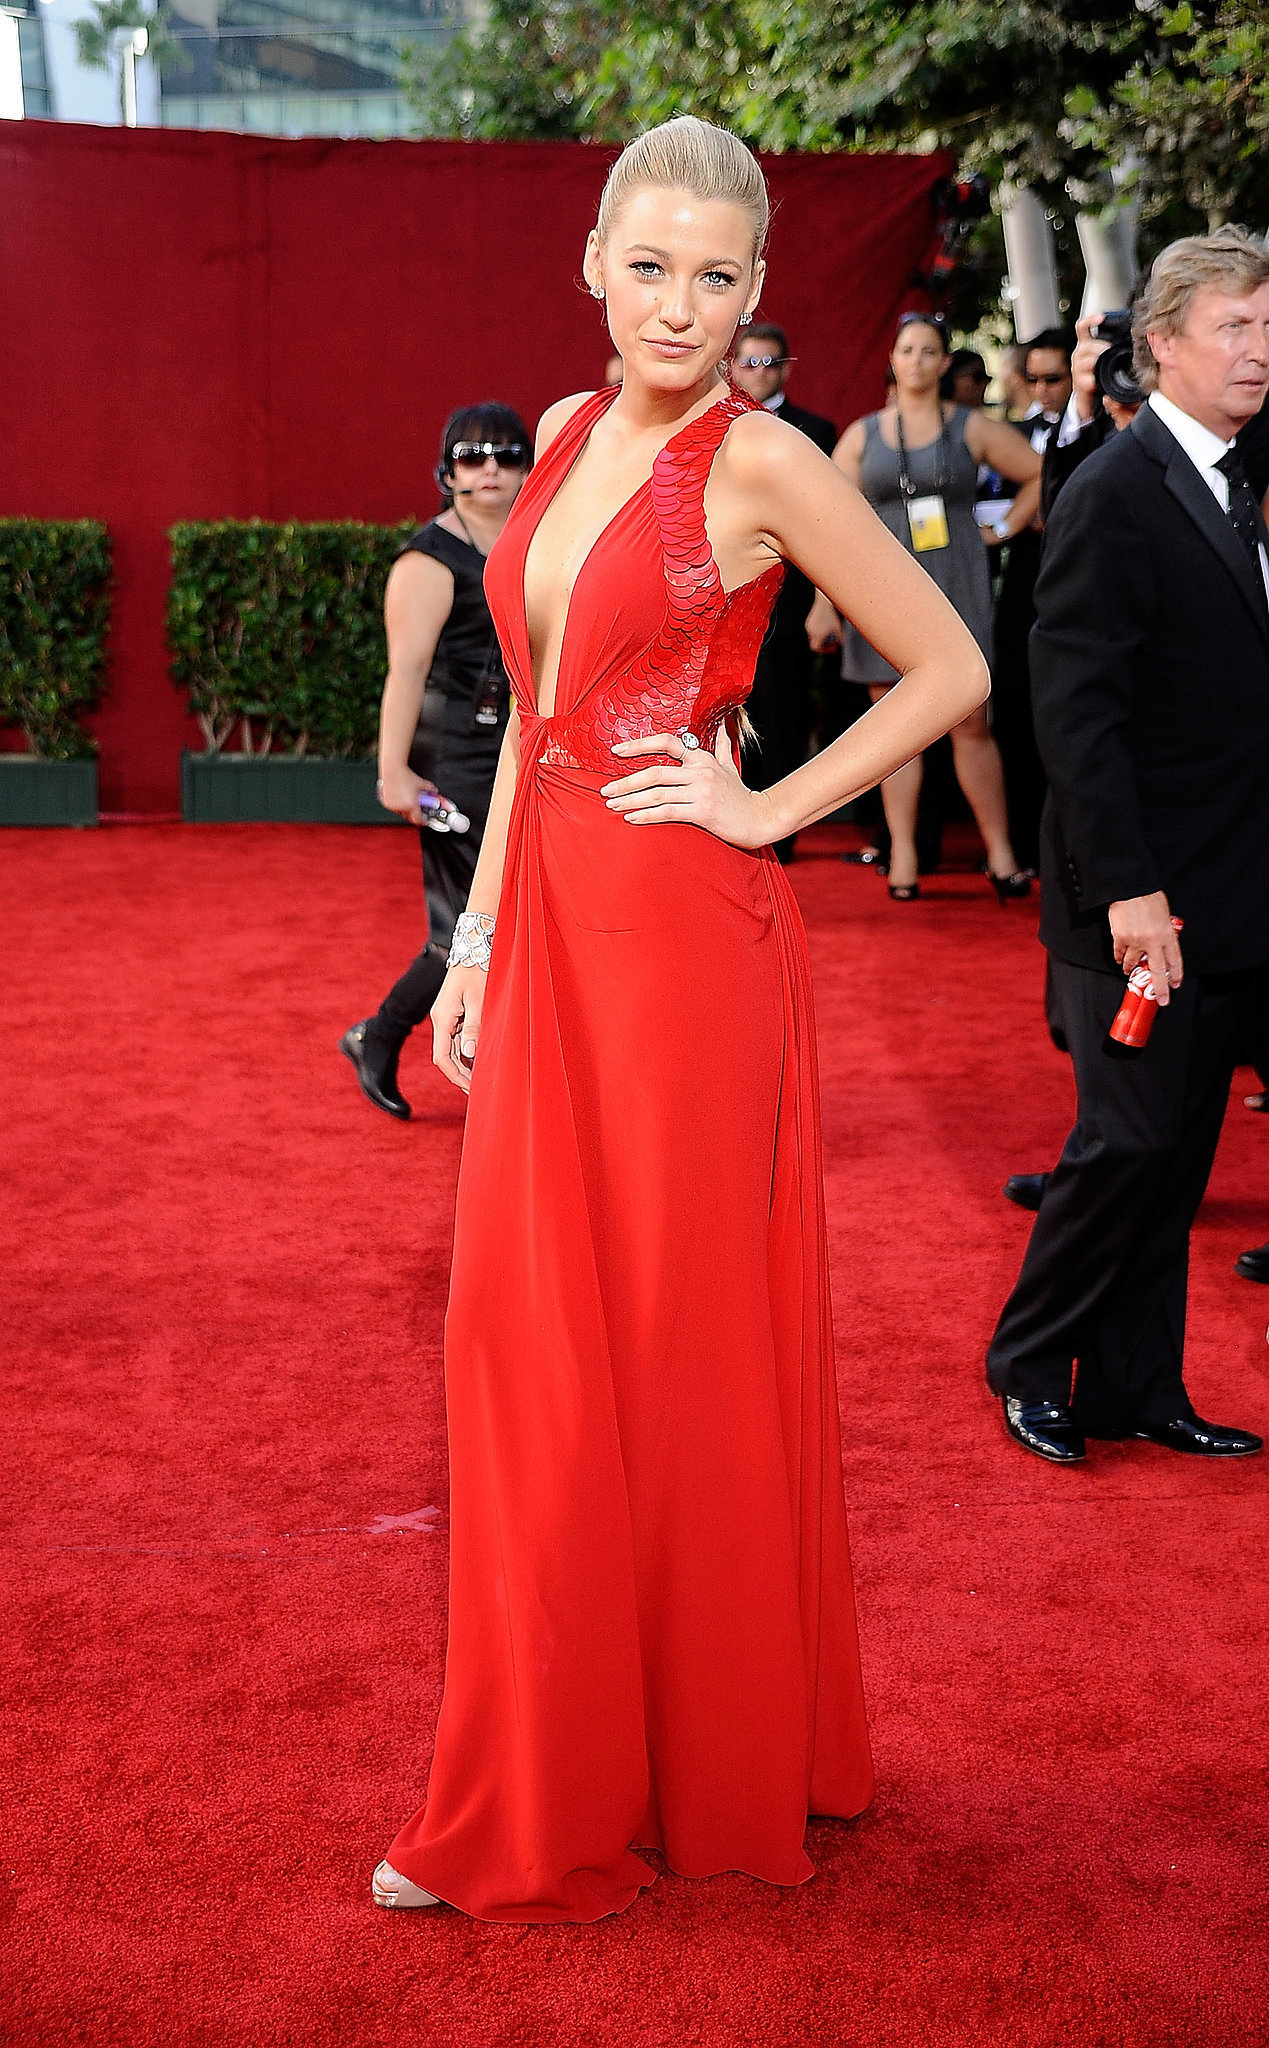 Blake Lively in Versace at the Emmys